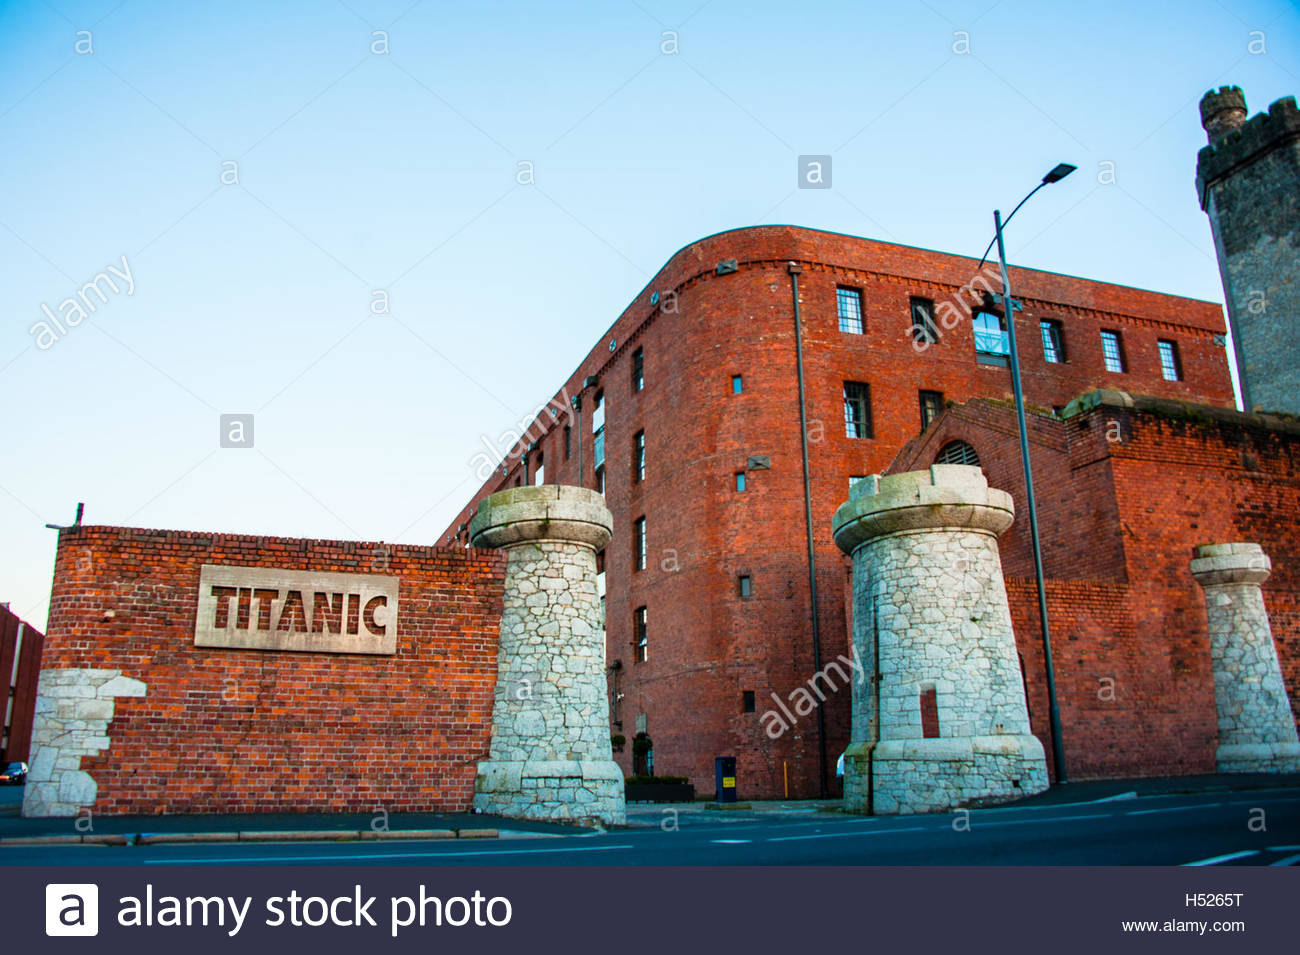 Titanic Hotel in Liverpool at Dusk, part of the development of the historic 19th Century Stanley Dock complex Stock Photo